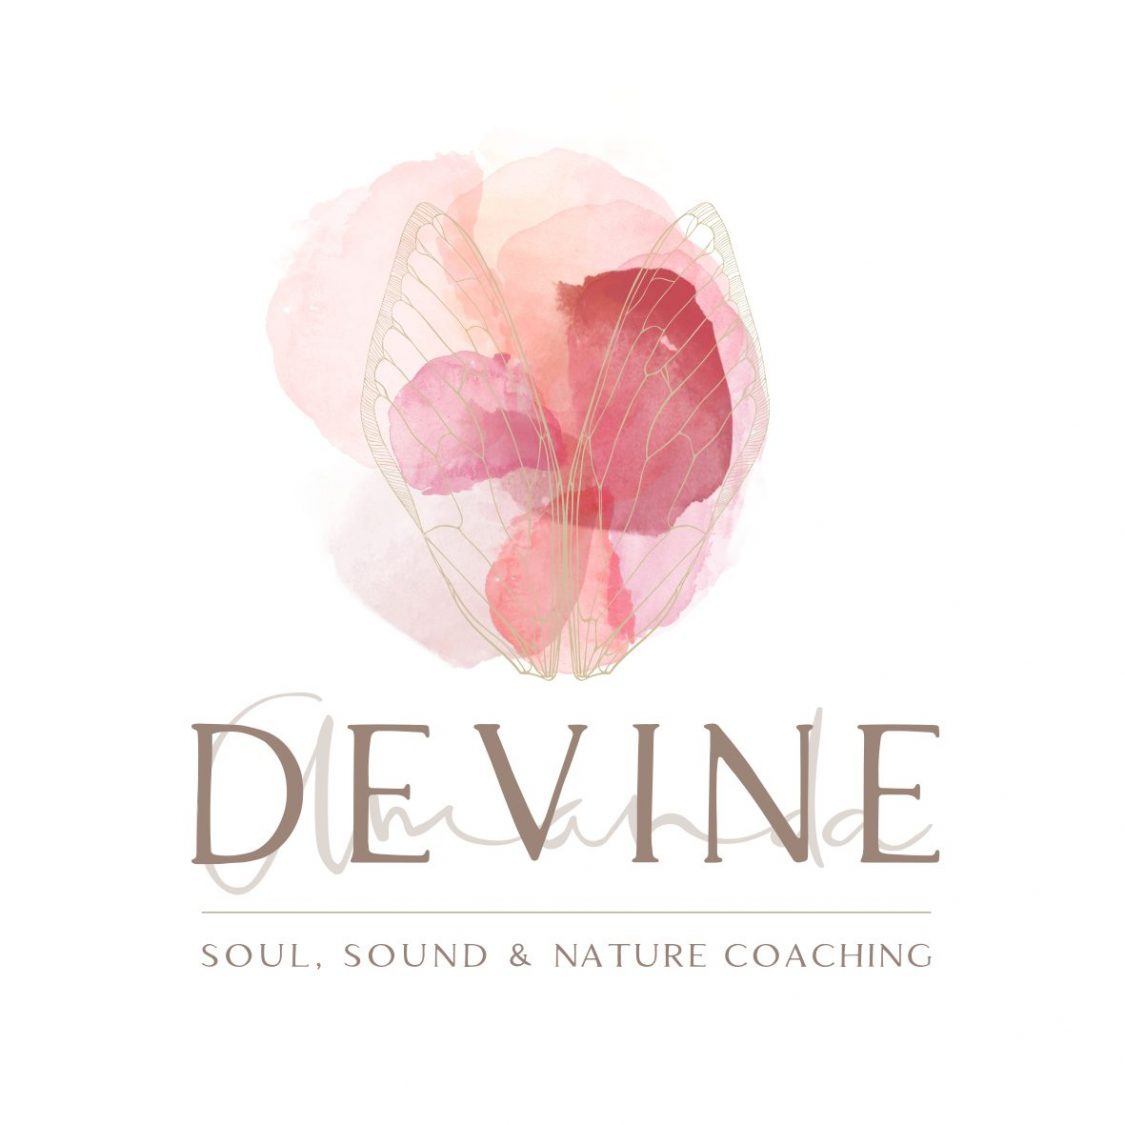 Beautiful Feminine Watercolour logo design by Tasmanian graphic designer Lara Hardy from Billie Hardy Creative